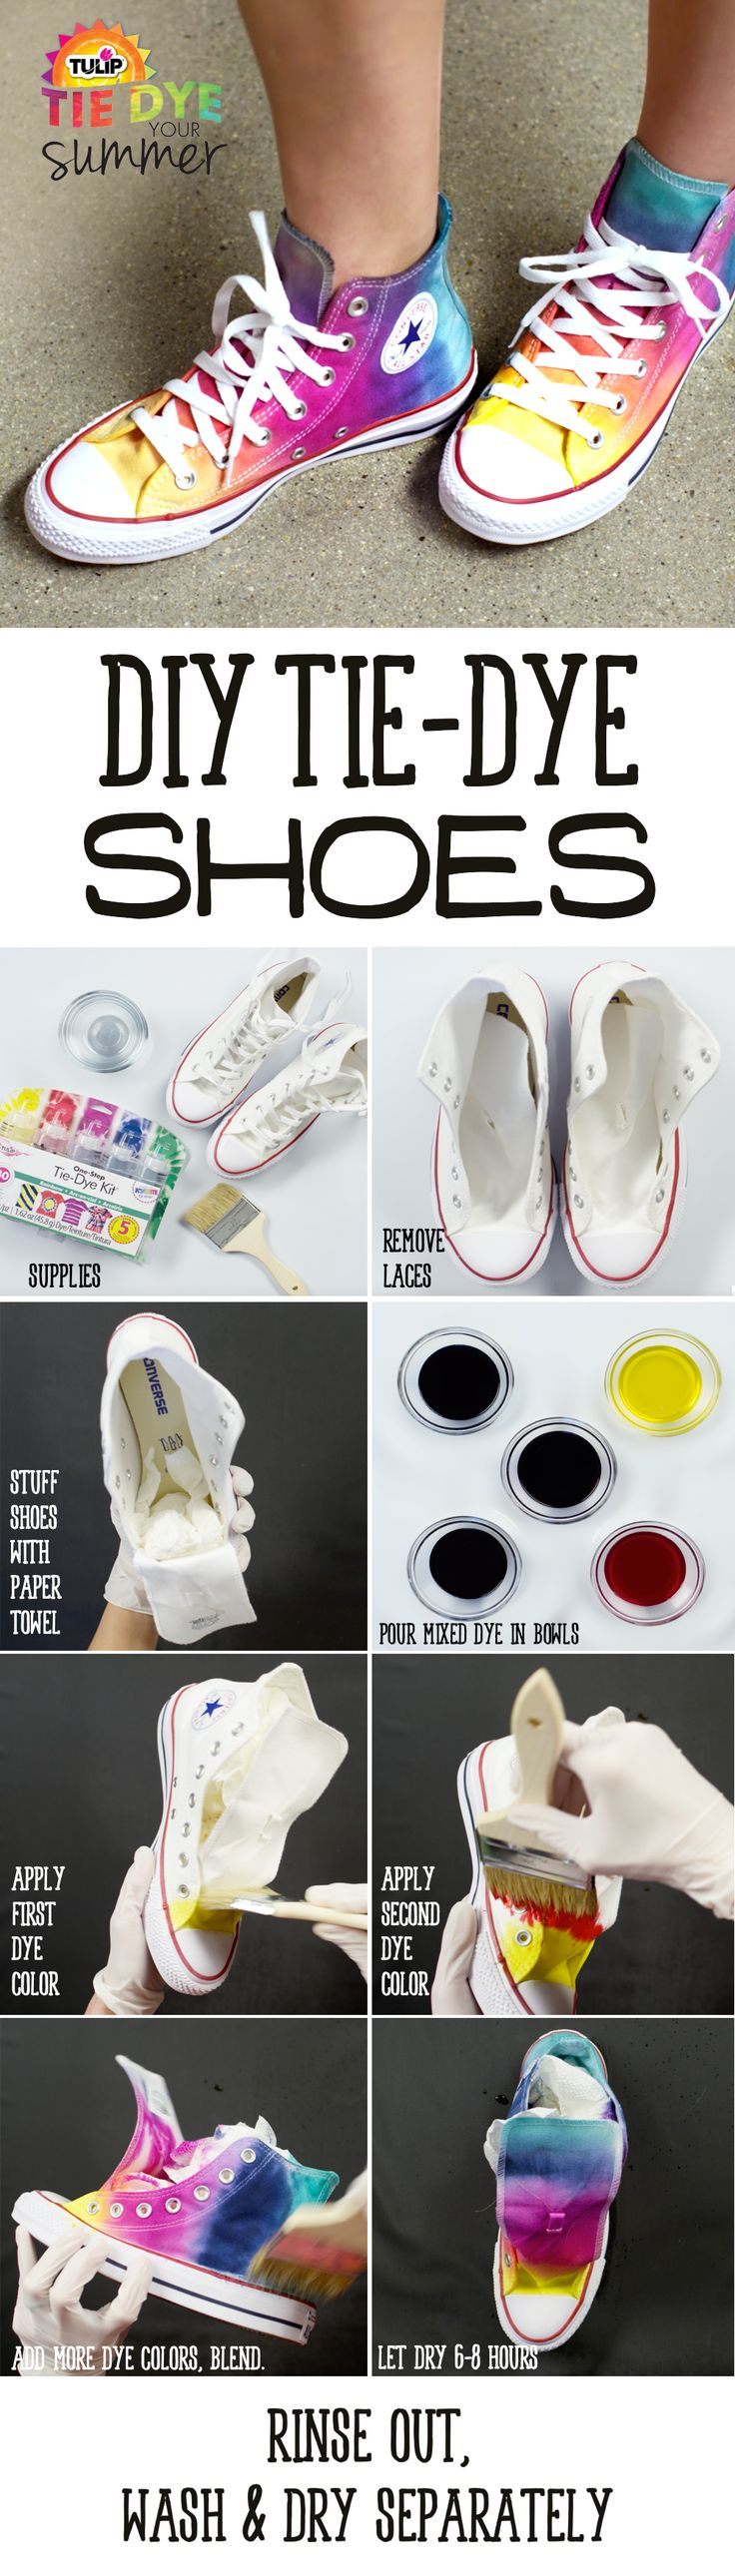 Tie-Dye Sneakers -  DIY summer - tie die tutorial                                                                                                                                                      More